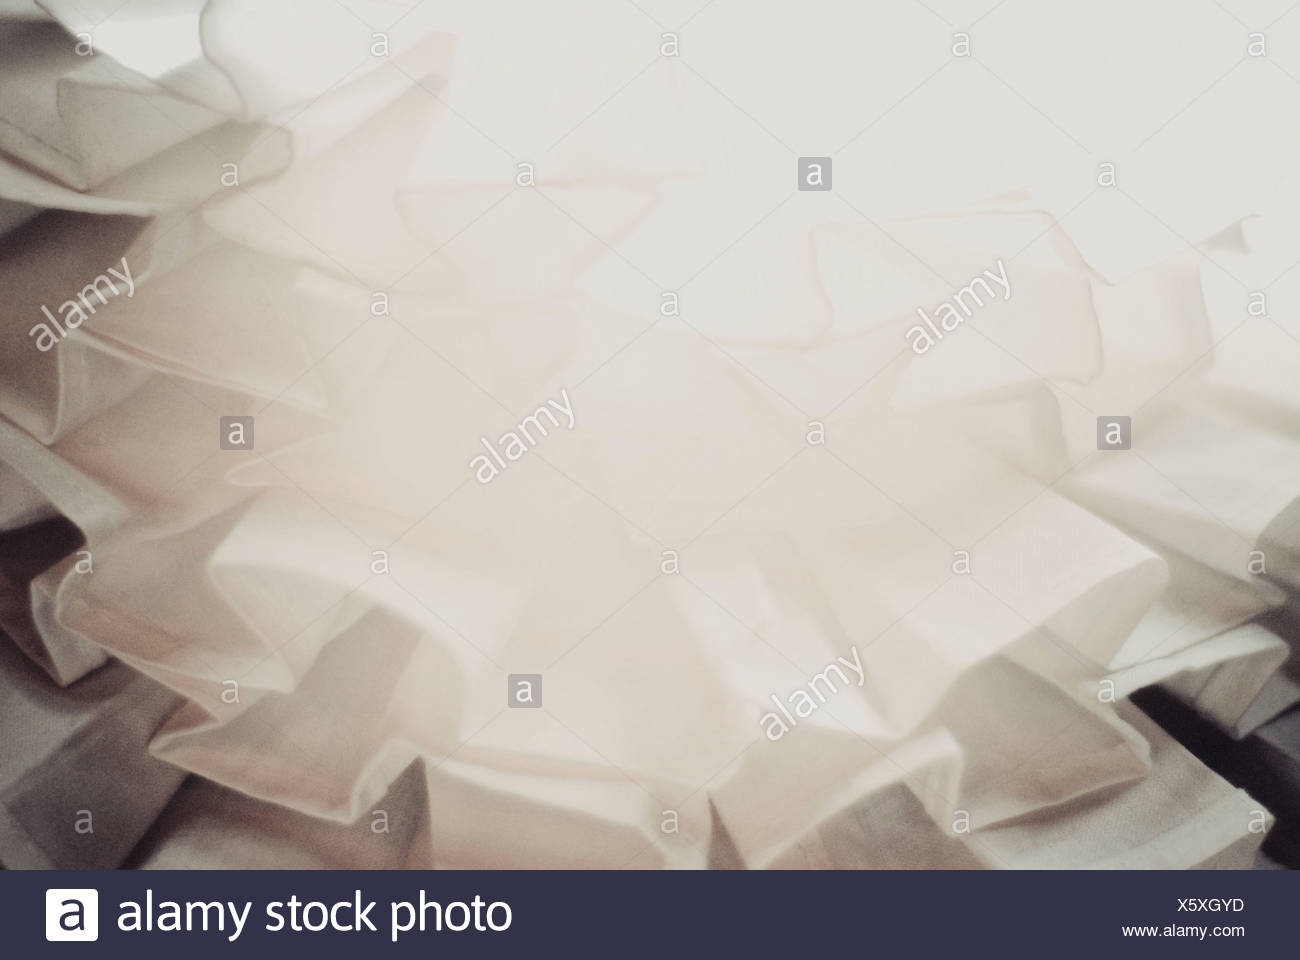 Folds of material - Stock Image